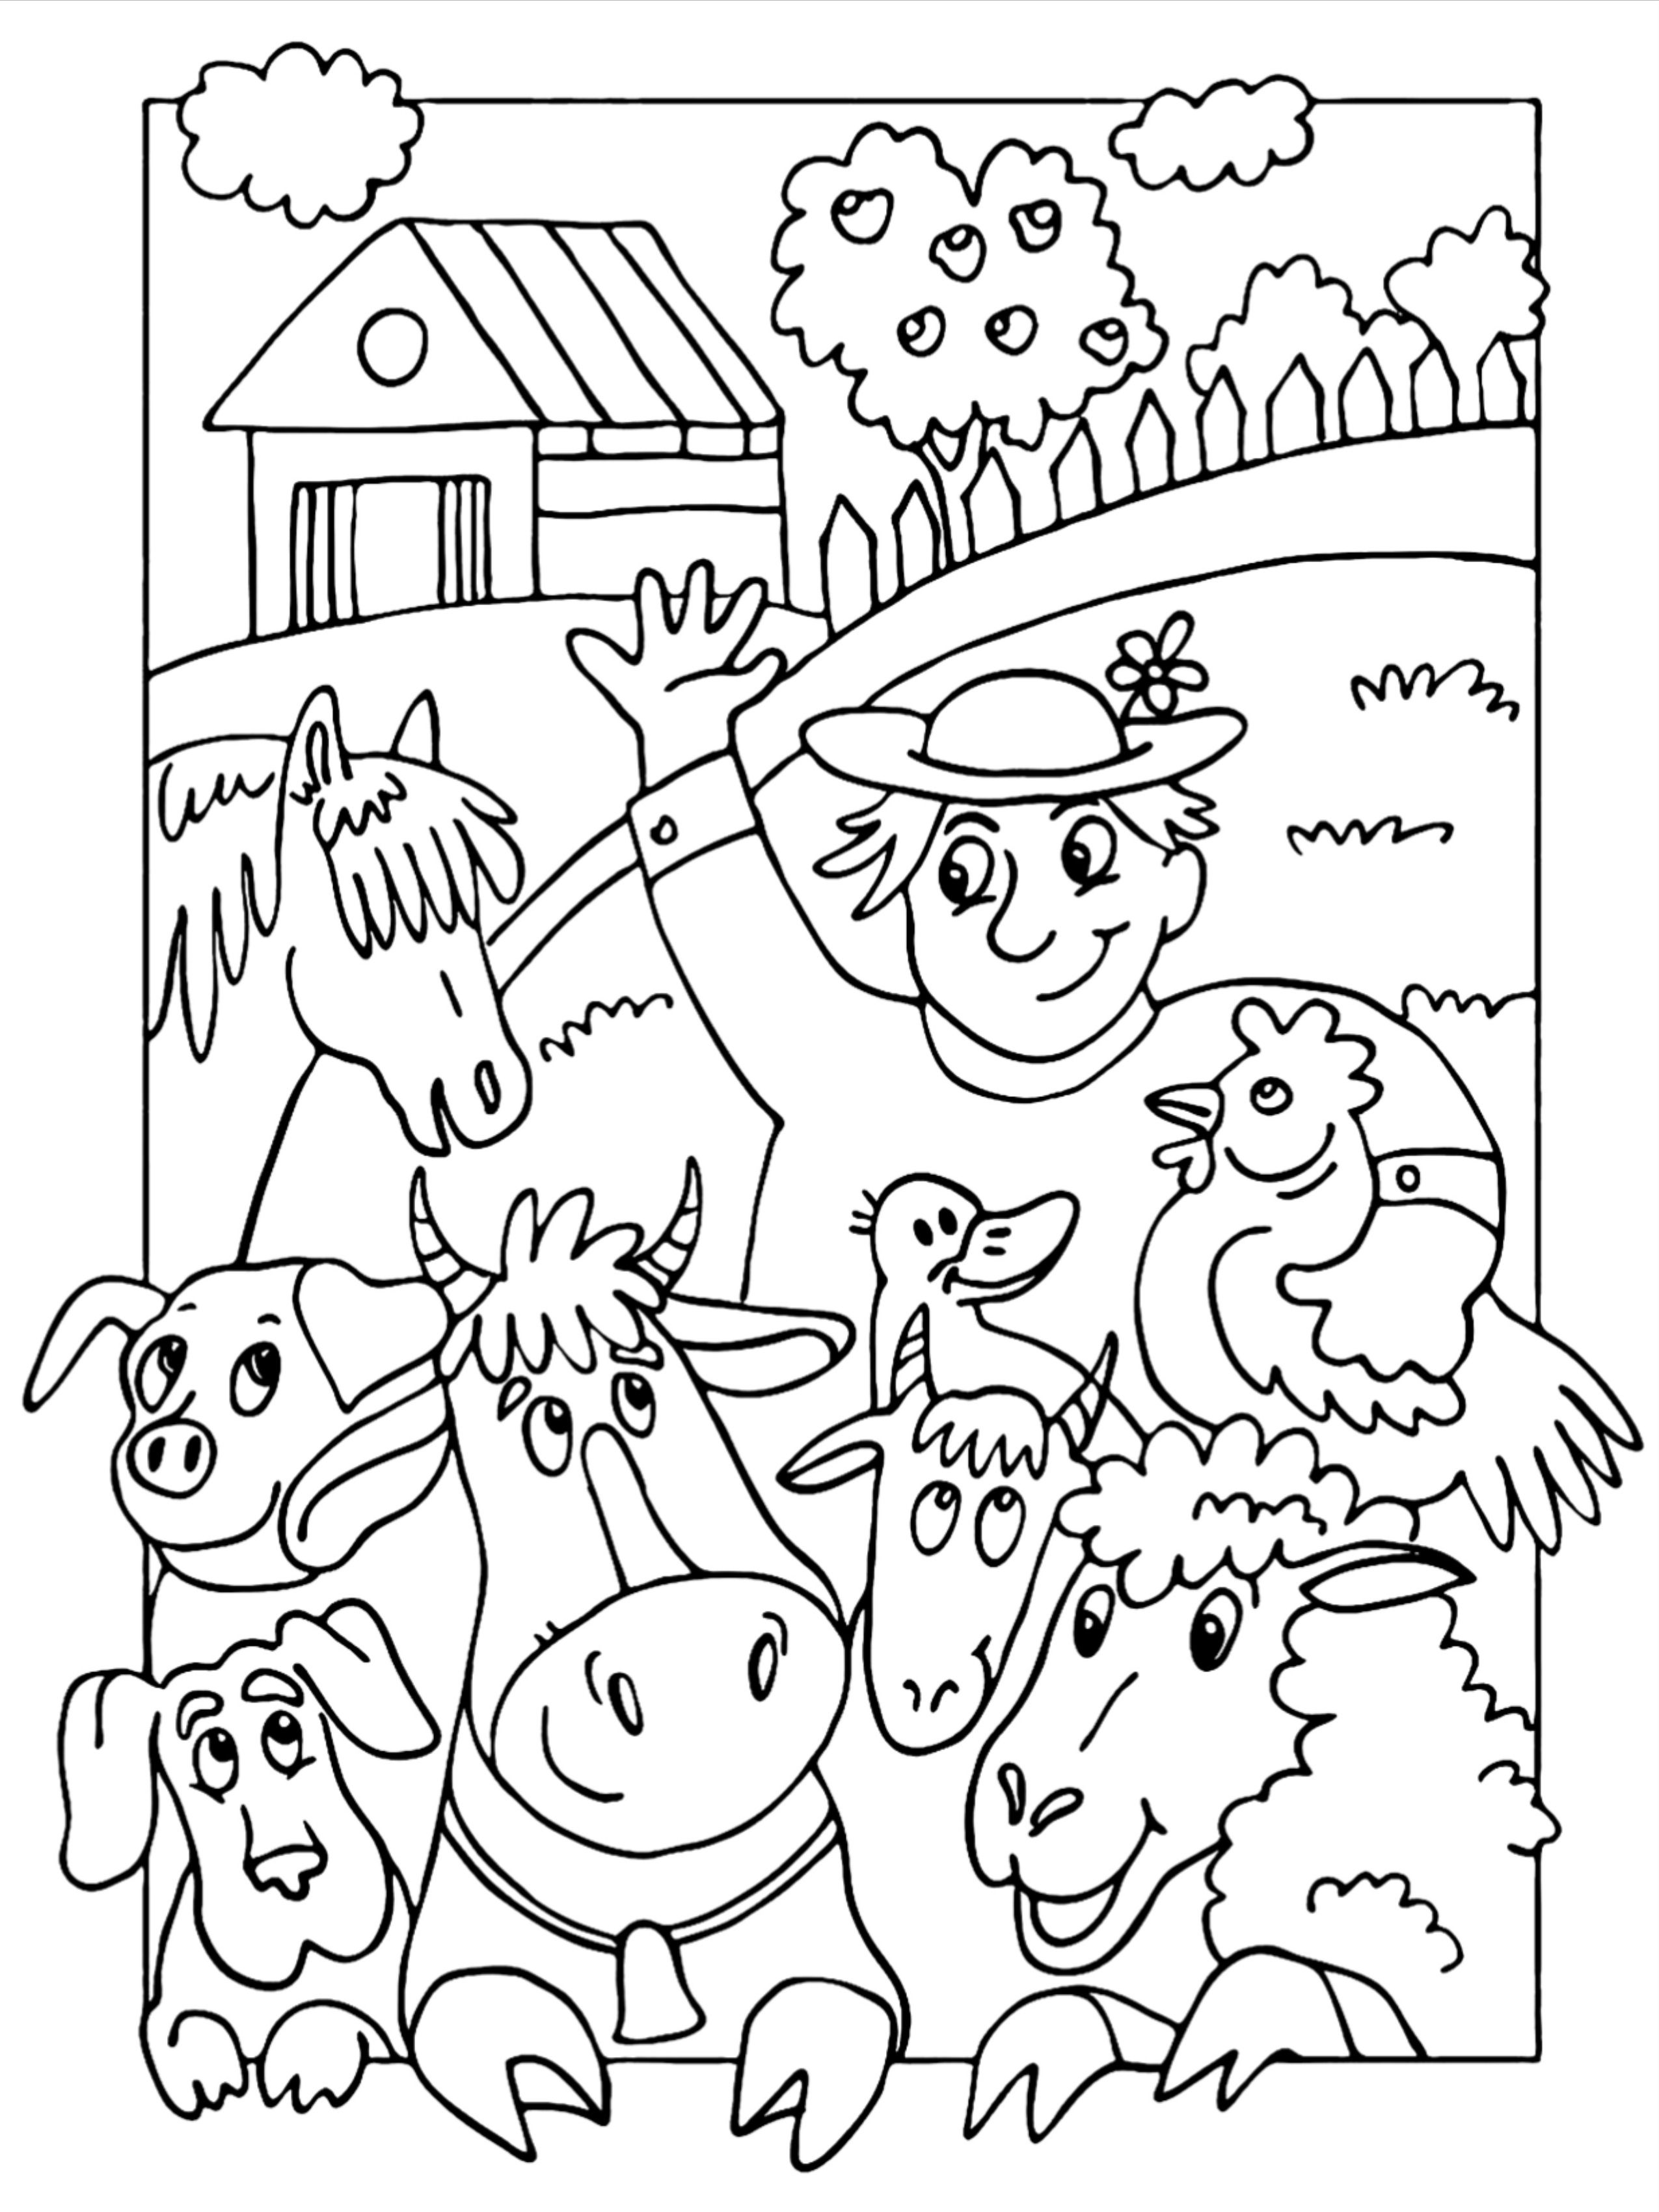 100 Animal Coloring Pages For Kids In 2021 Coloring Pages For Kids Animal Coloring Pages Coloring Pages [ 3400 x 2550 Pixel ]